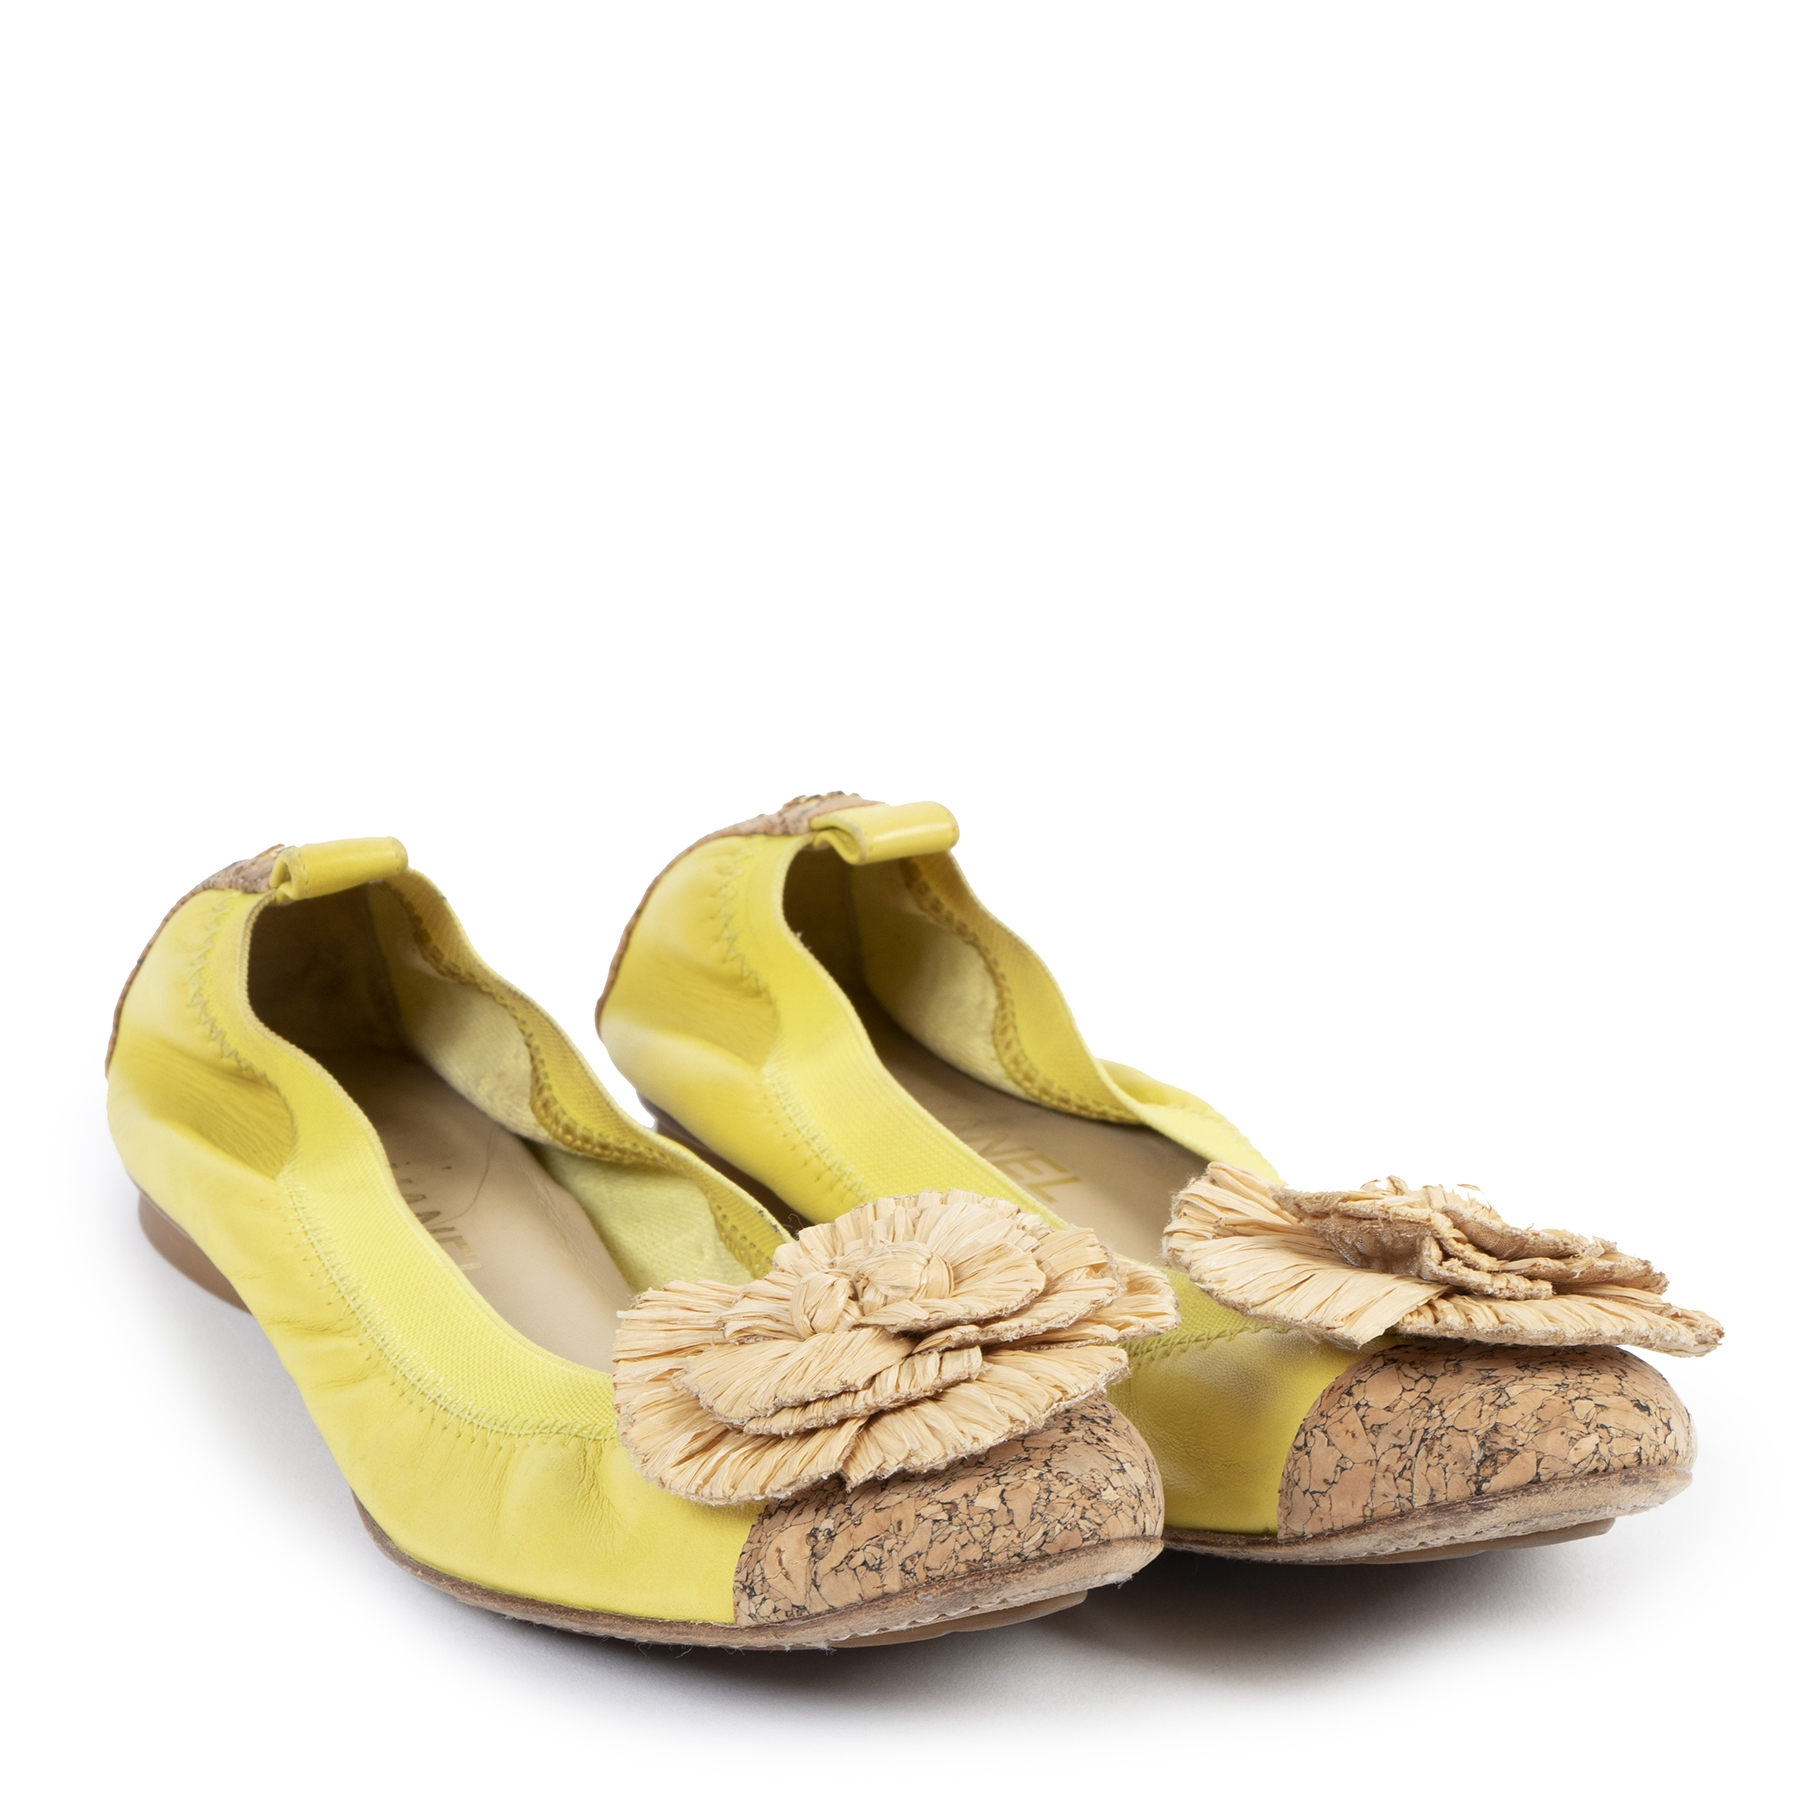 Chanel Yellow Straw Flower Ballerinas - Size 39,5